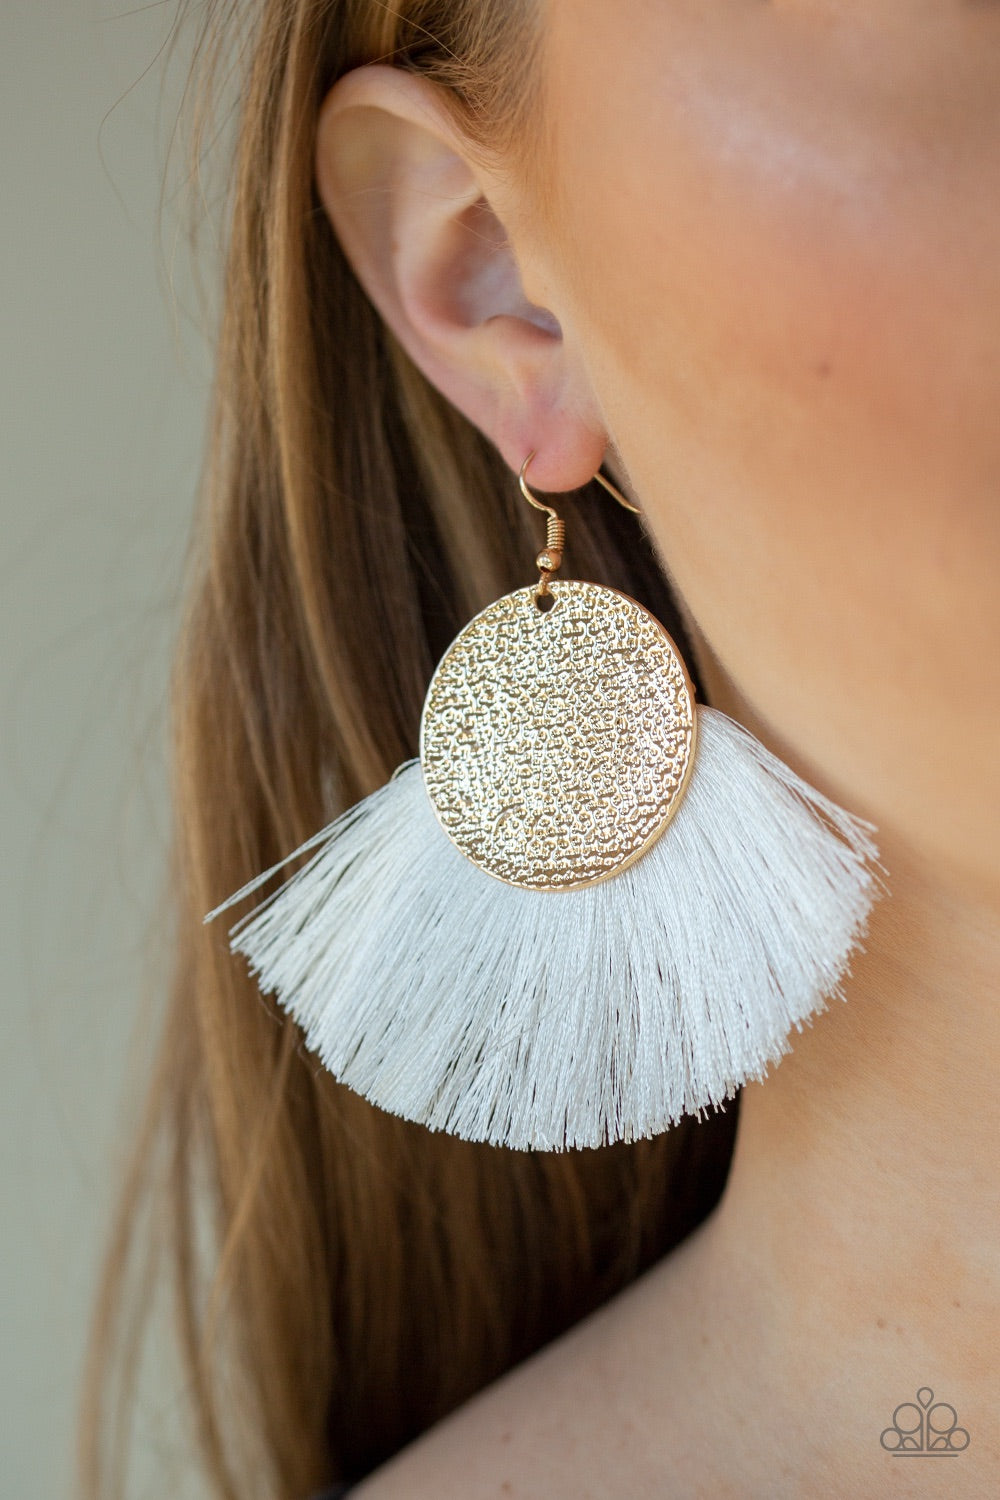 Foxtrot Fringe - Gold Paparazzi Earring - Pink Dragon Jewels